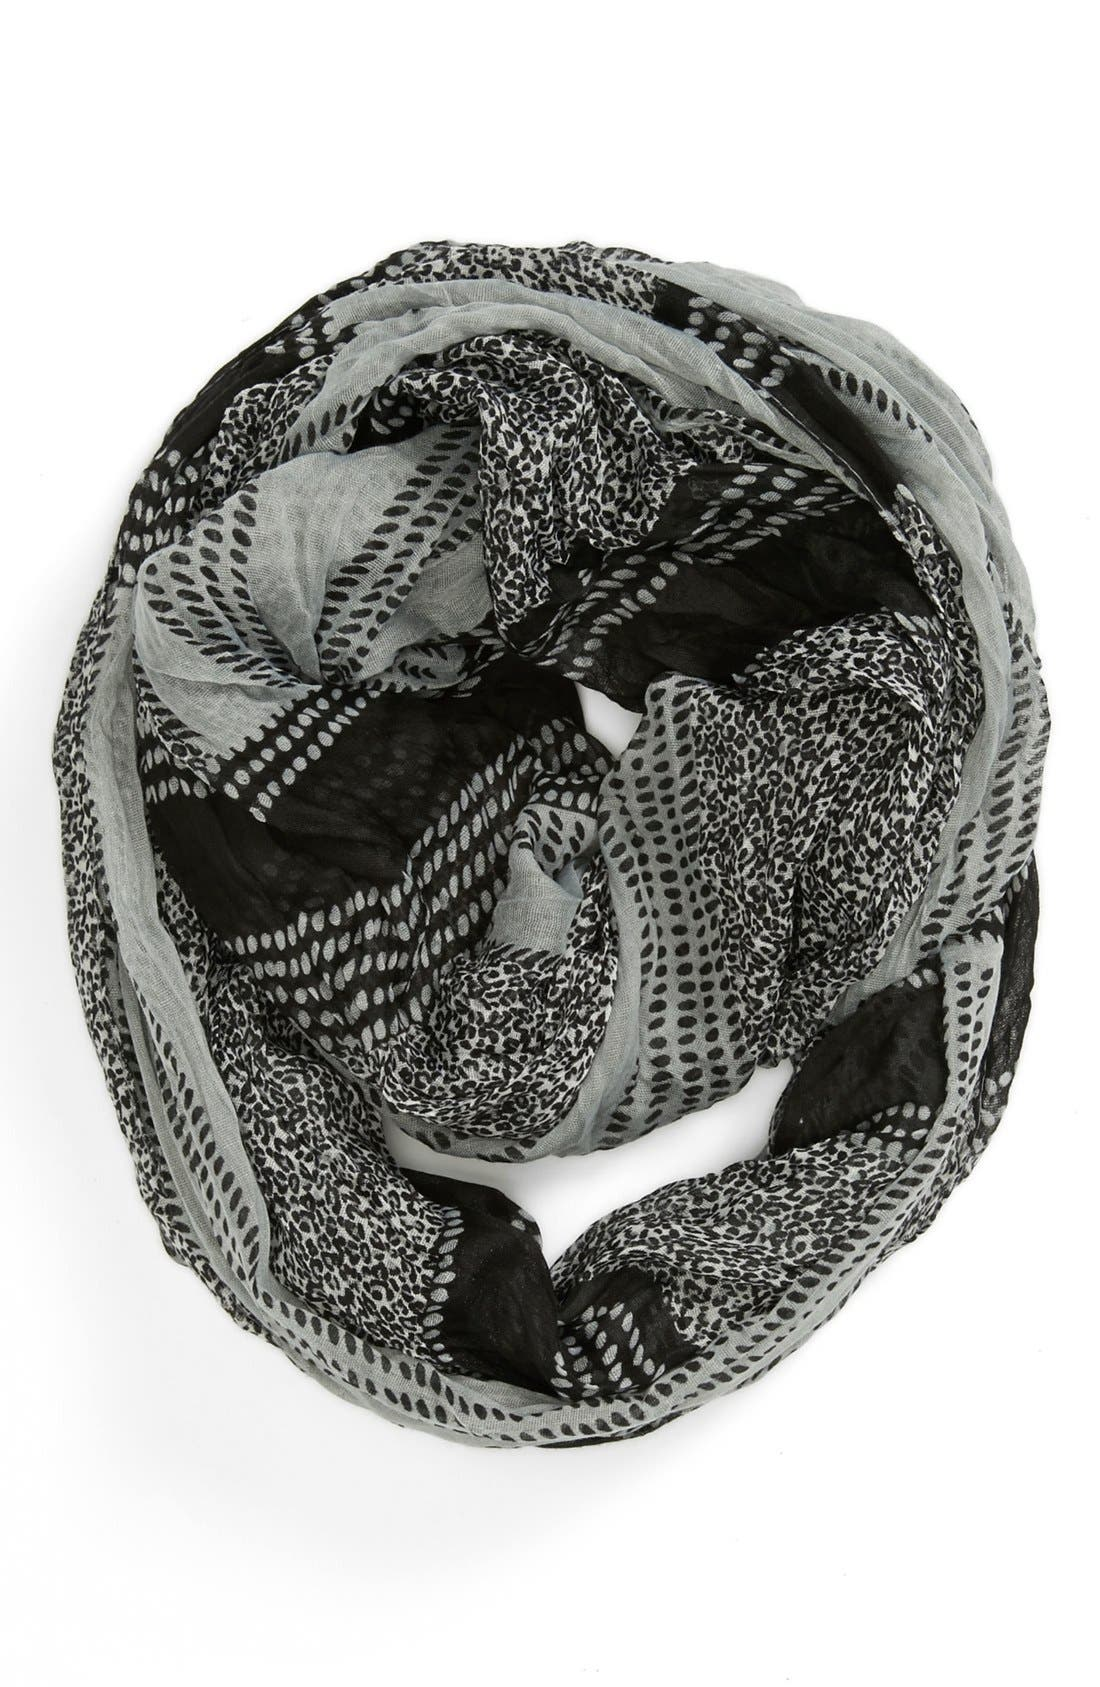 Alternate Image 1 Selected - Tarnish 'Variegated Leopard' Infinity Scarf